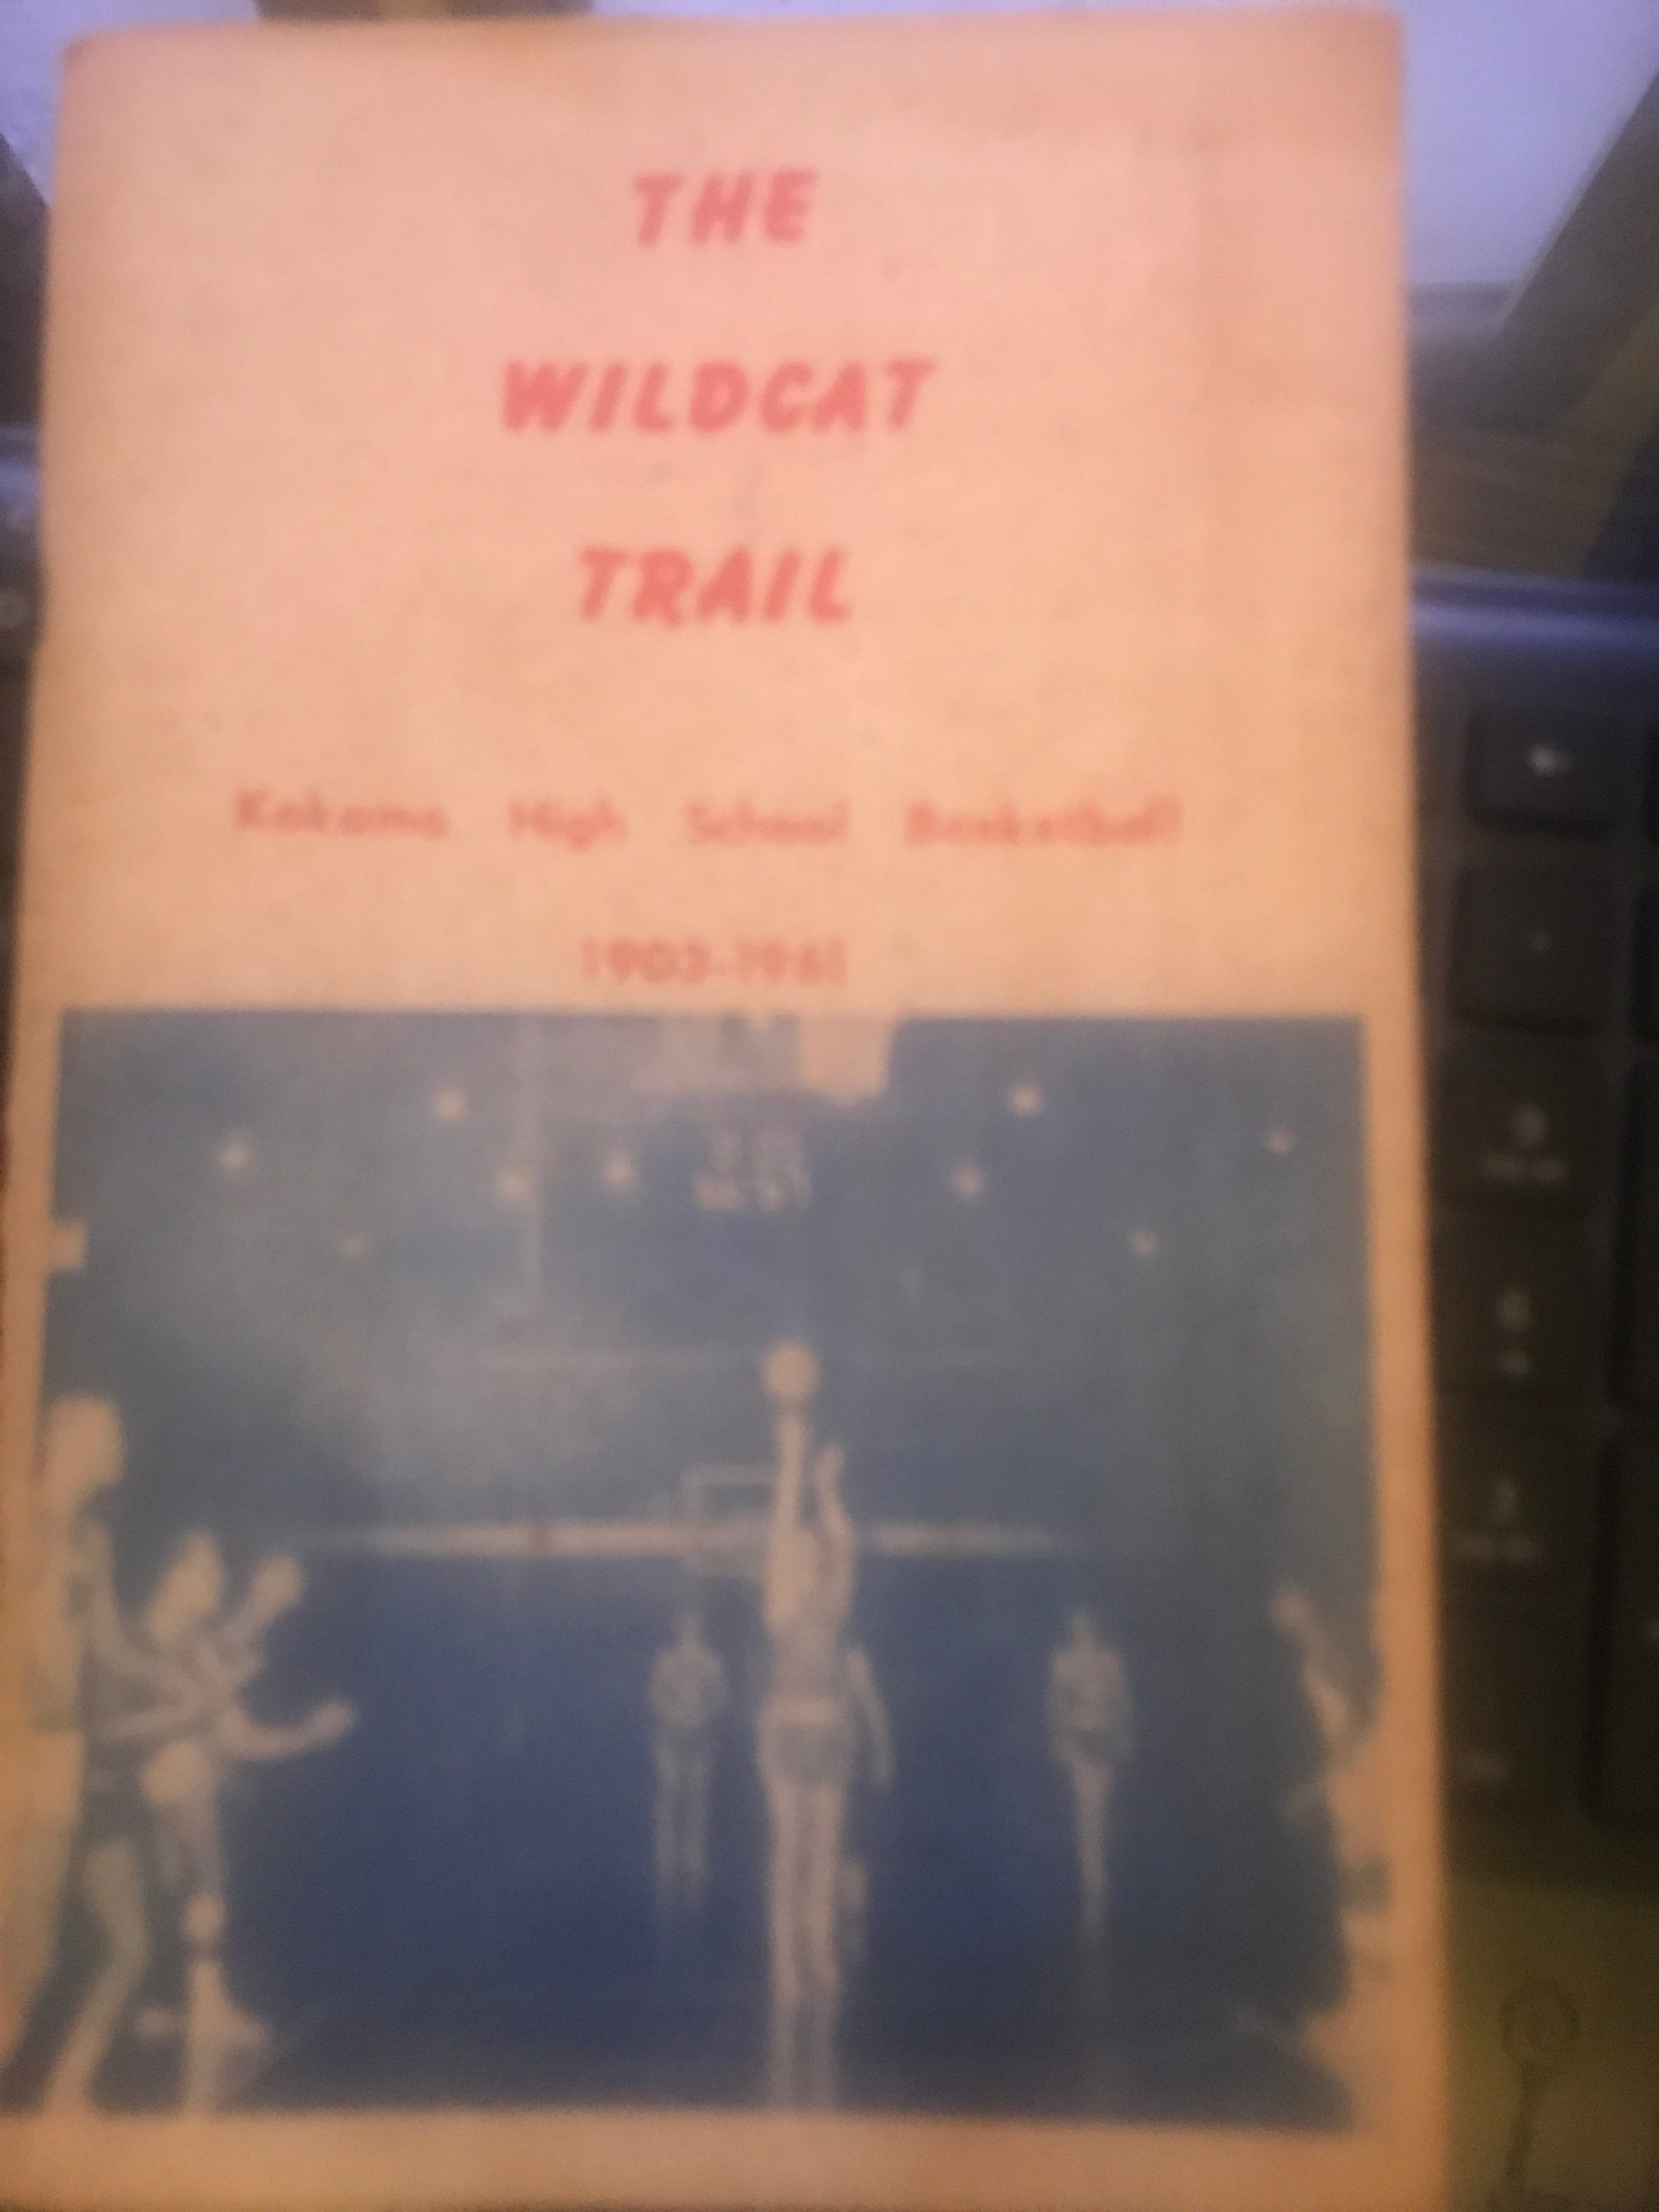 1903-1961 The Wildcat Trail Kokomo High School Basketball Book - Vintage Indy Sports